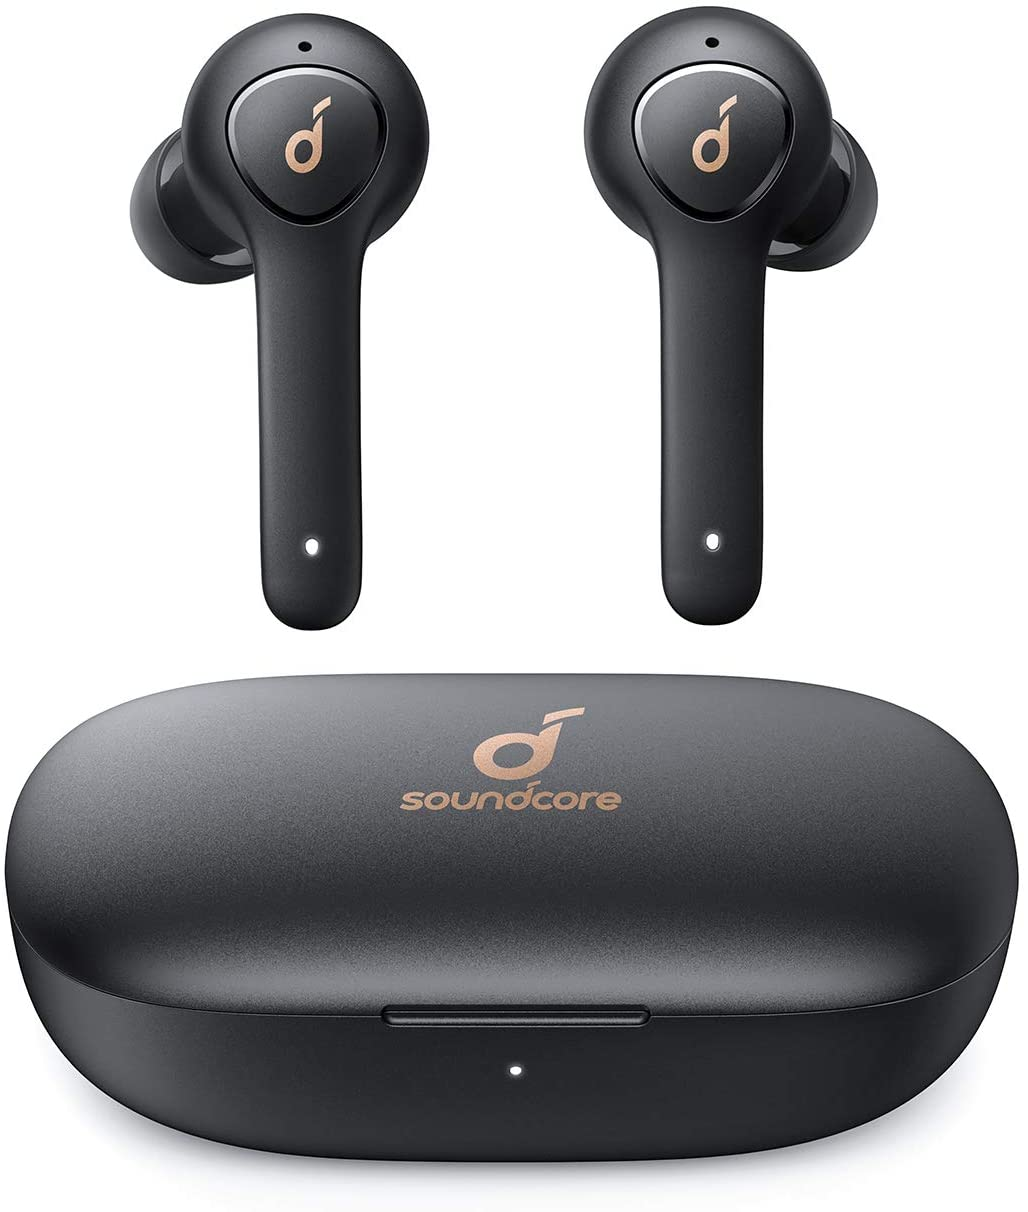 Soundcore Wireless Earphones and Earbuds